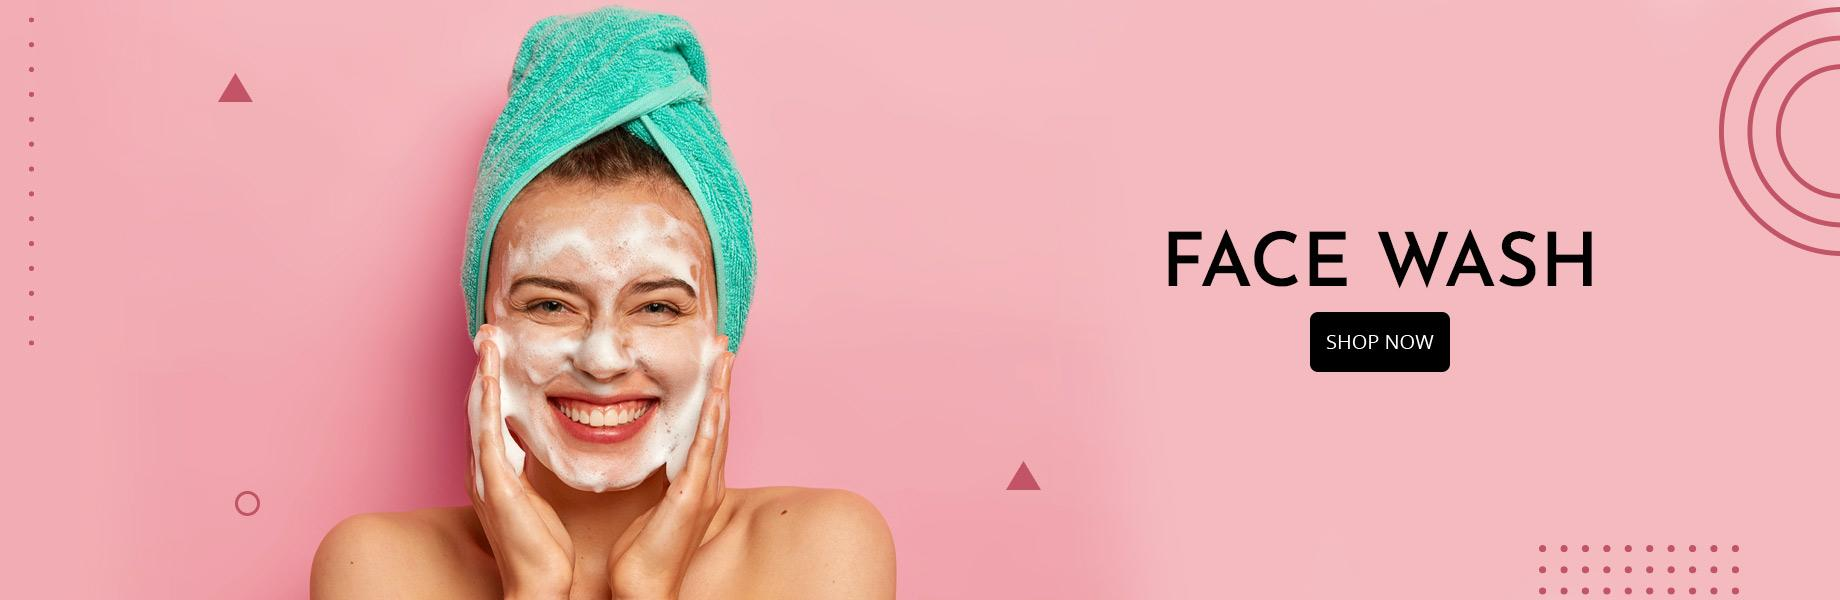 Womens-Page-EveryDay-Essentials-Static-Face-Wash-Web.jpg